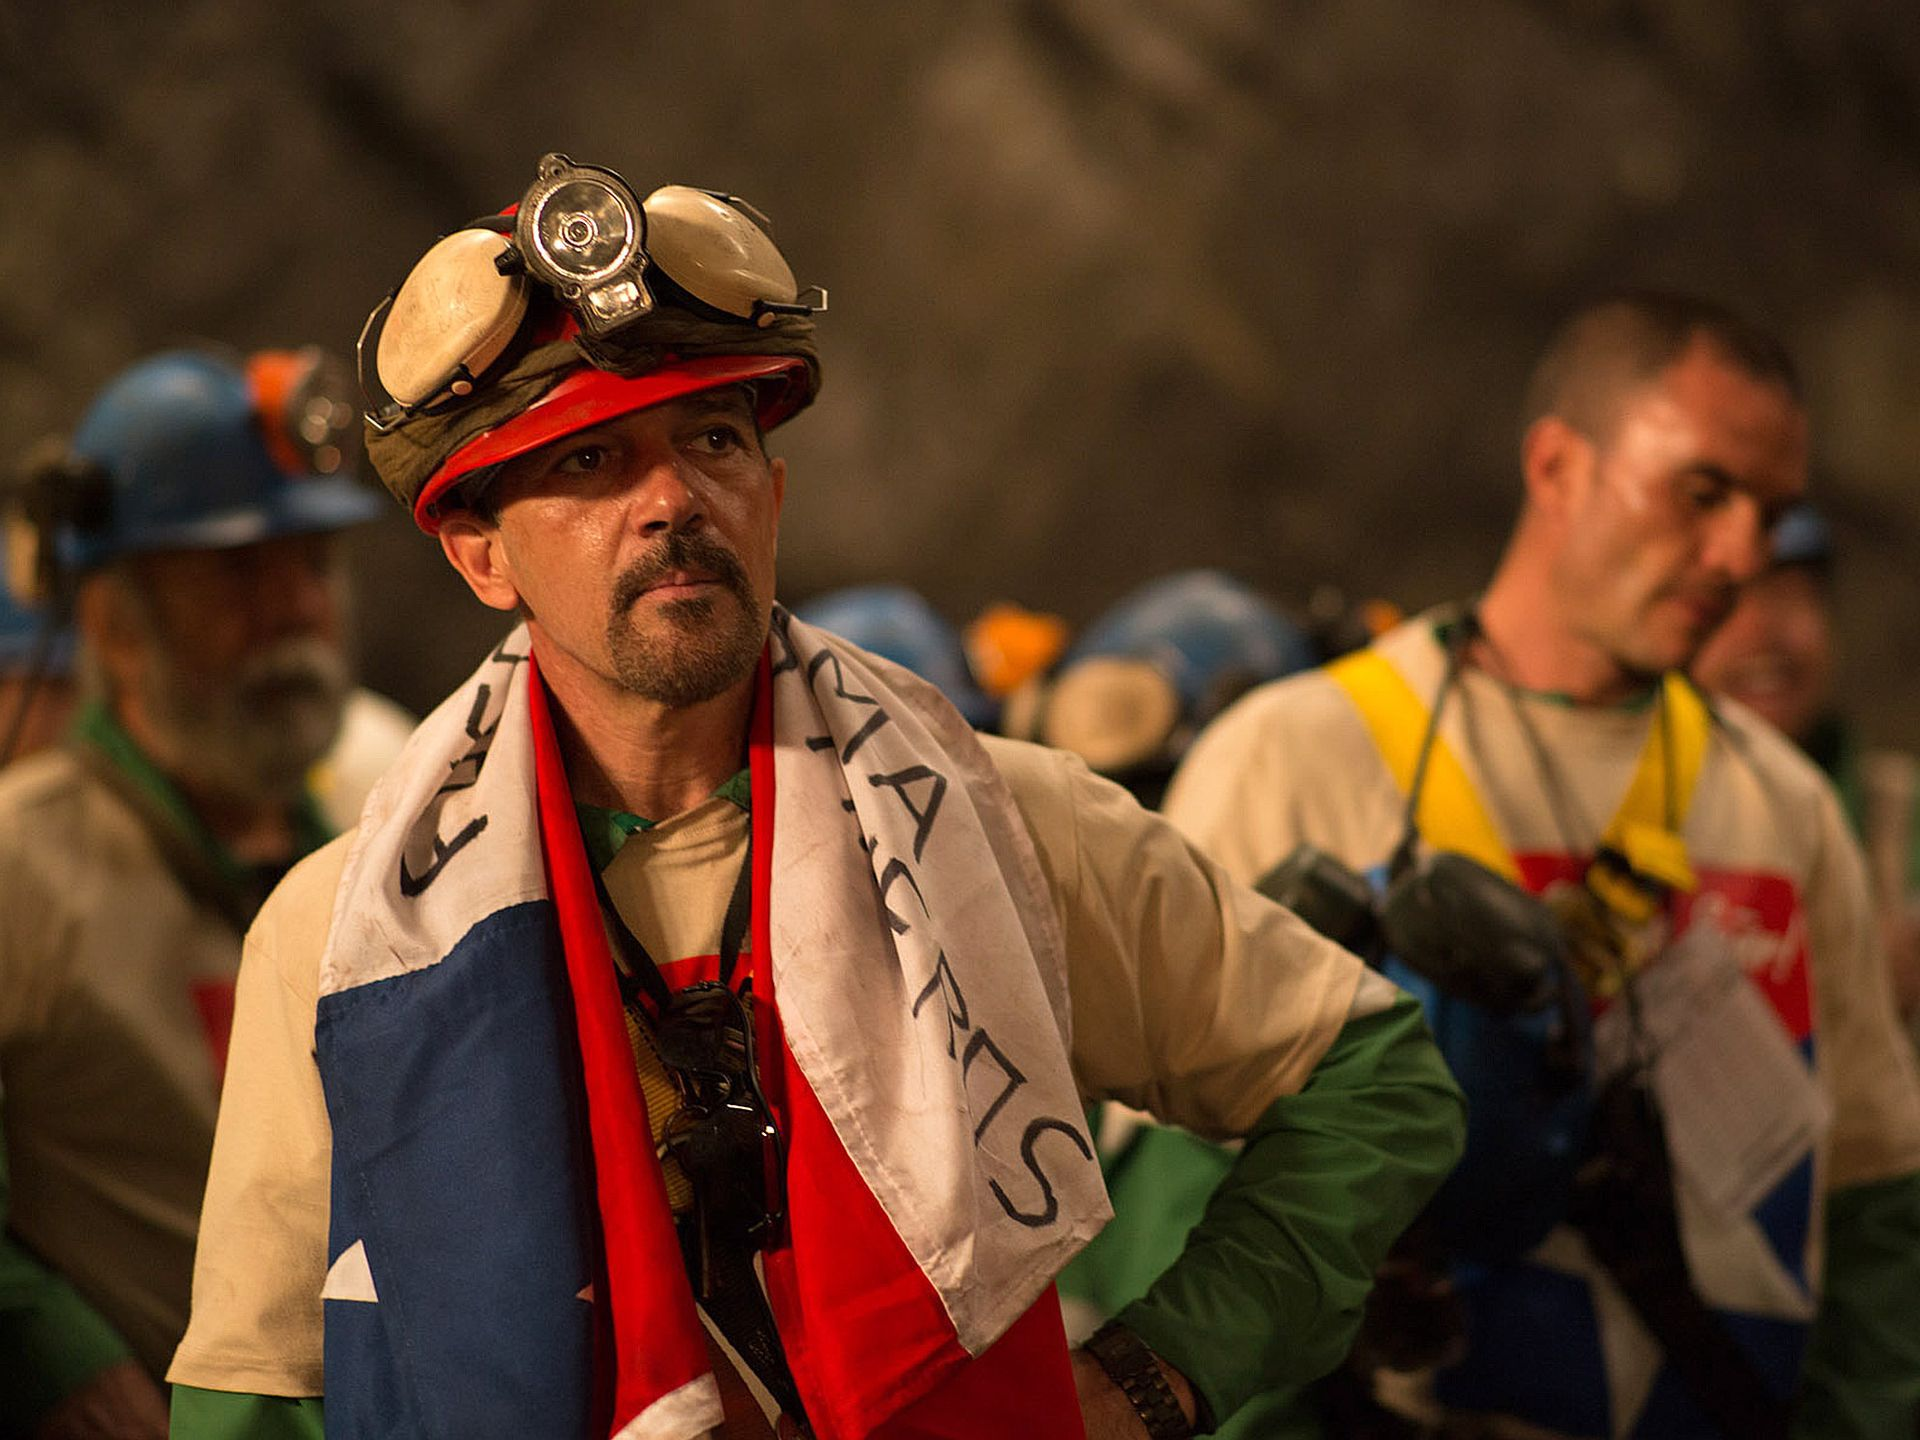 Review the 33 trivializes the chilean mining accident and its there are small moments of levity throughout the 33 but the humor only serves to displace any lingering sense of seriousness the movie may have had amipublicfo Choice Image